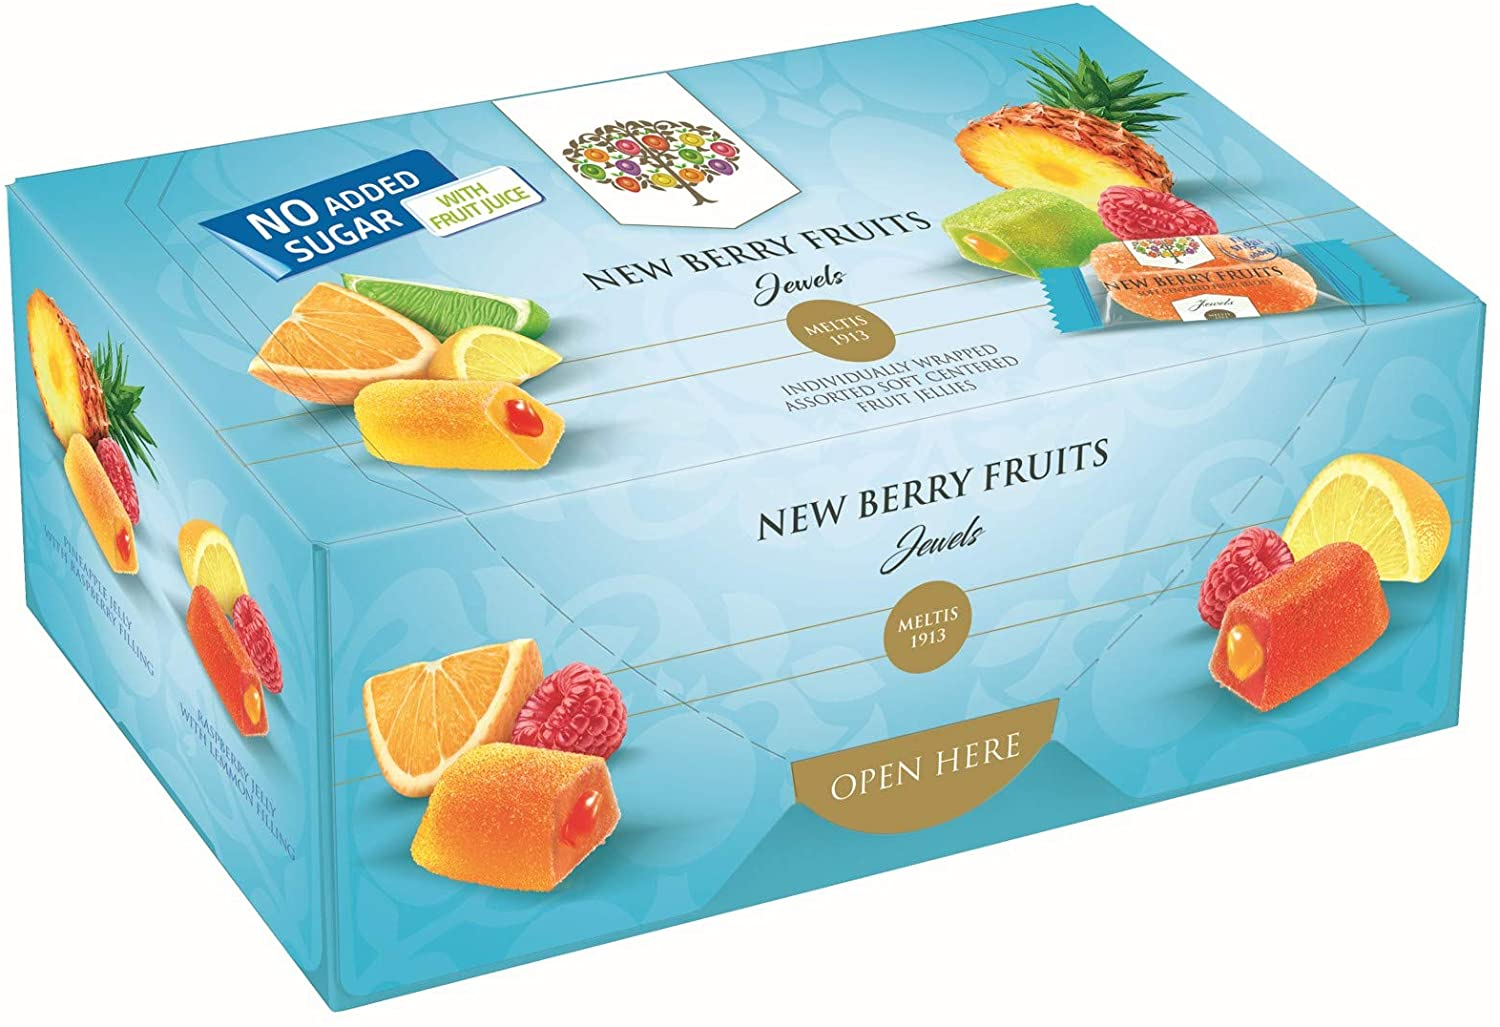 Meltis New Berry Fruits Jewels (no added sugar)